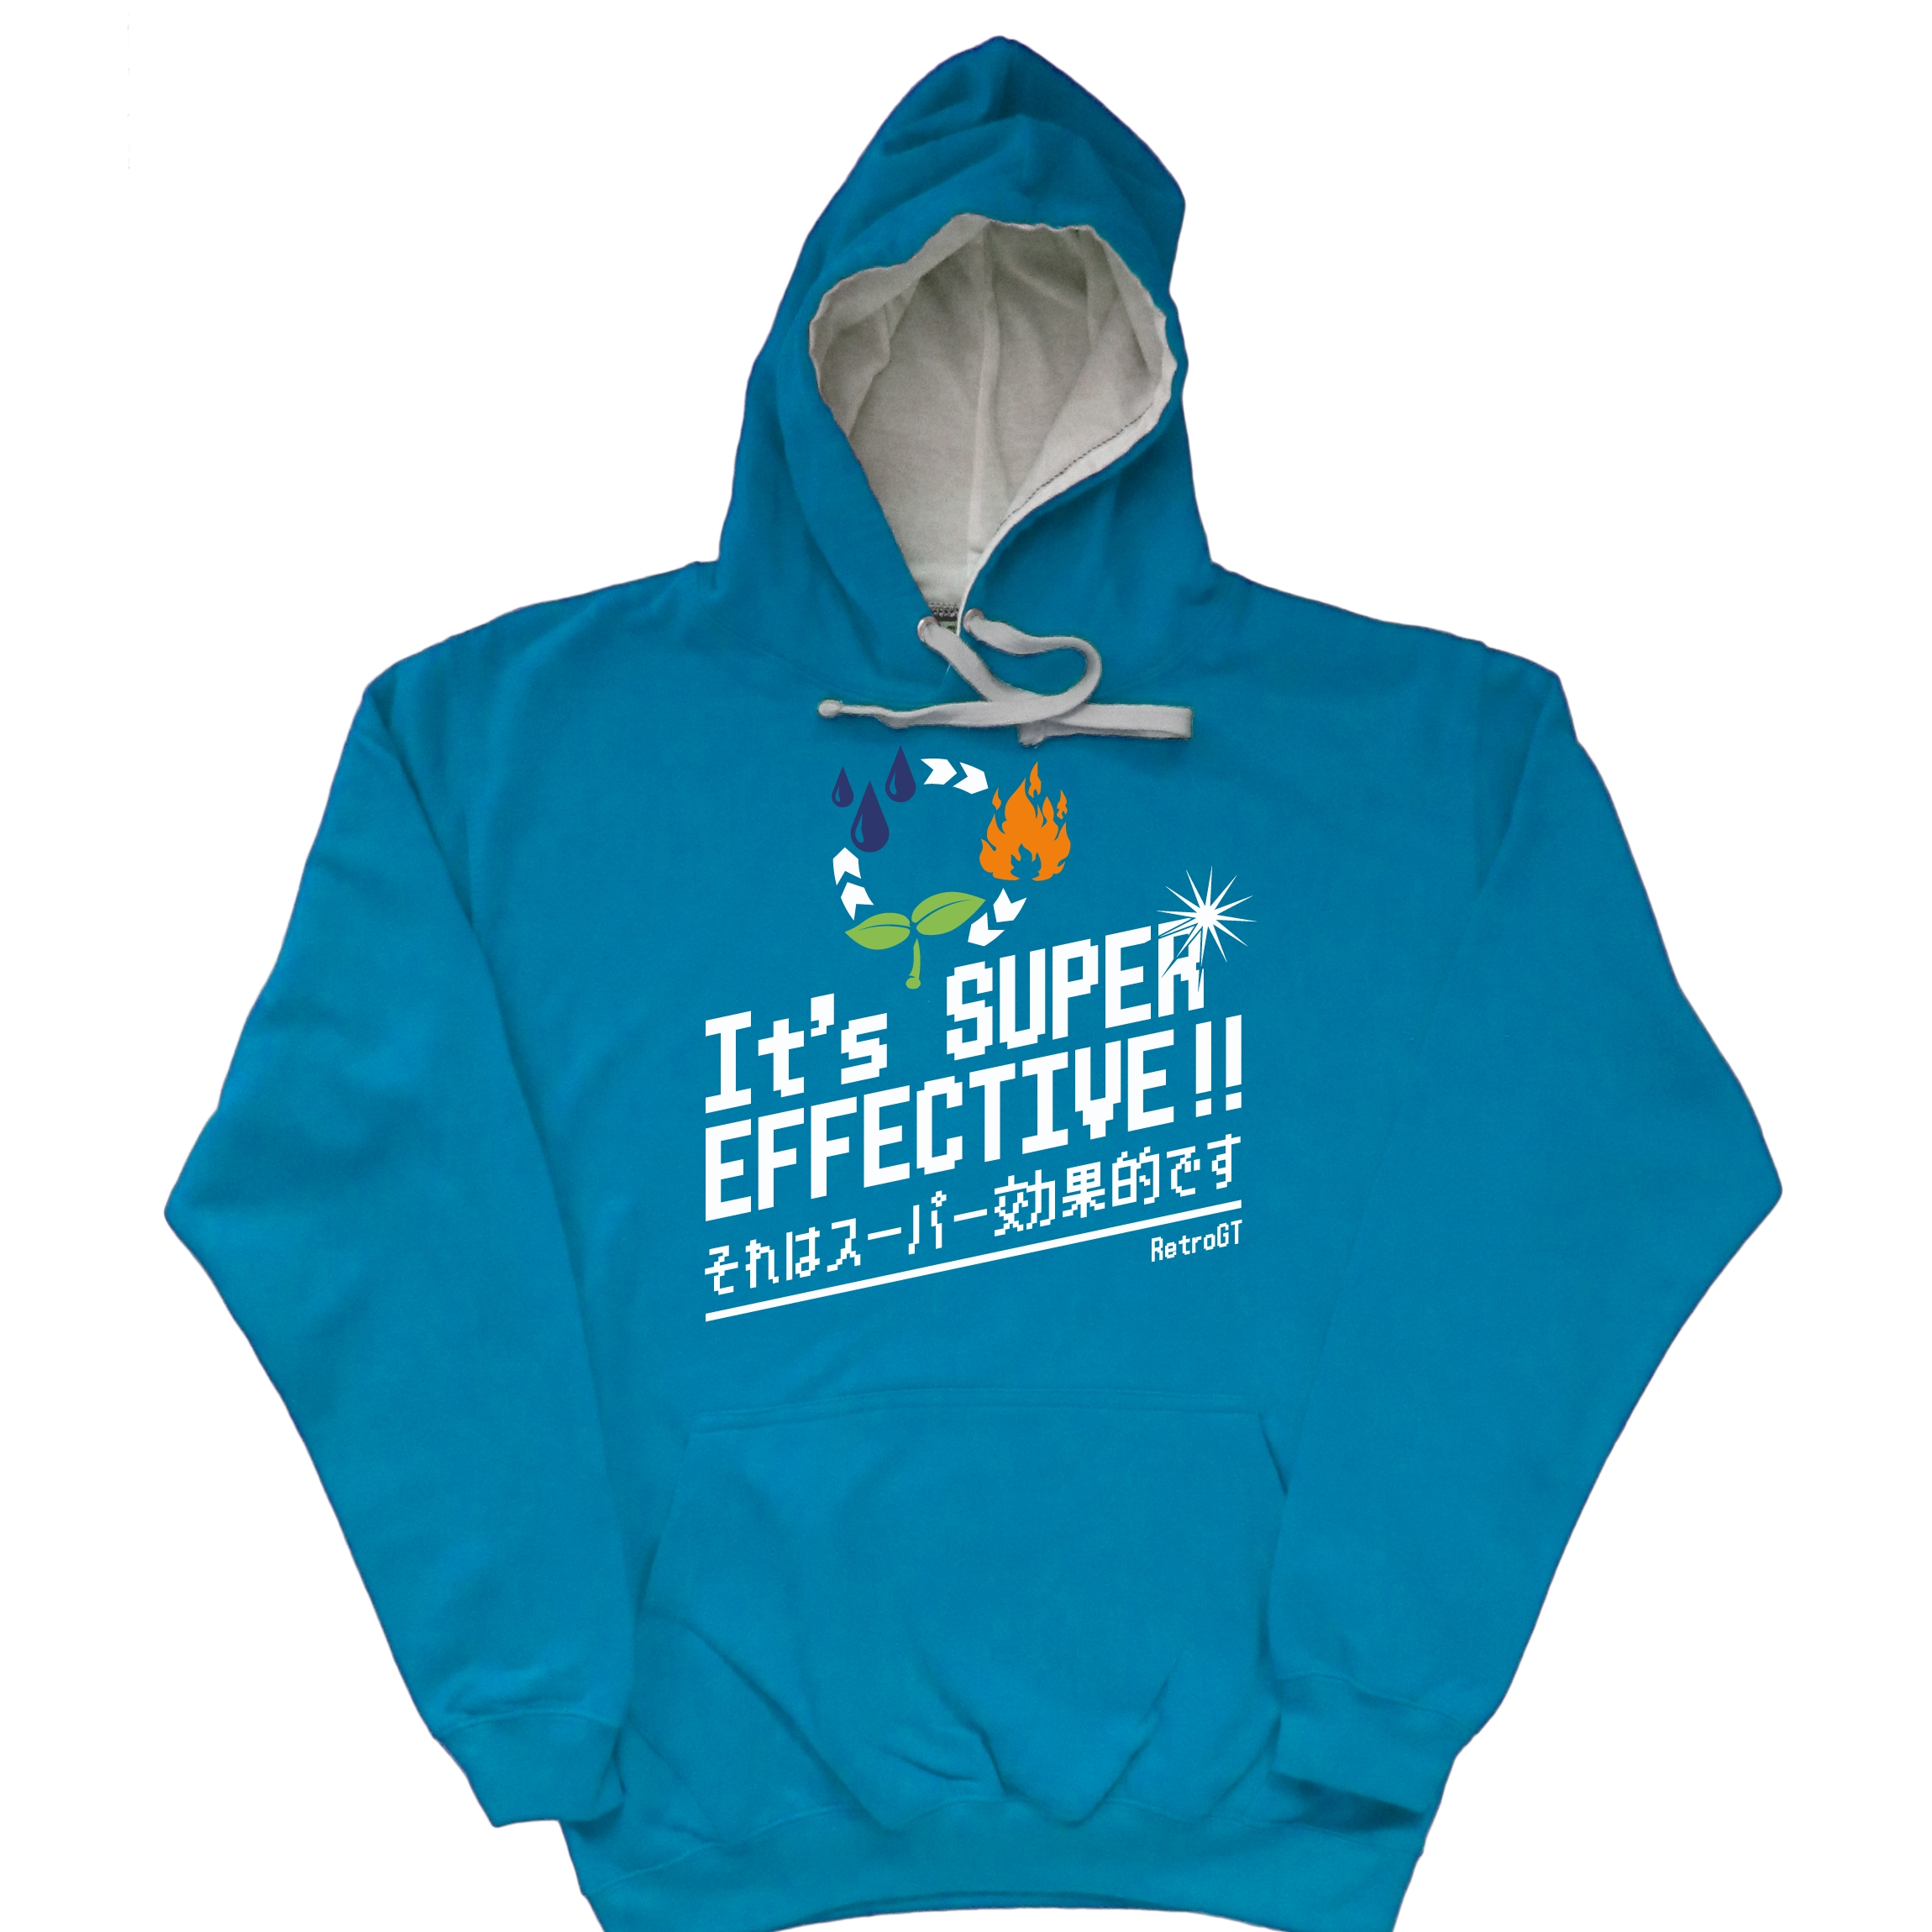 Photograph: It's Super Effective! Hoodie